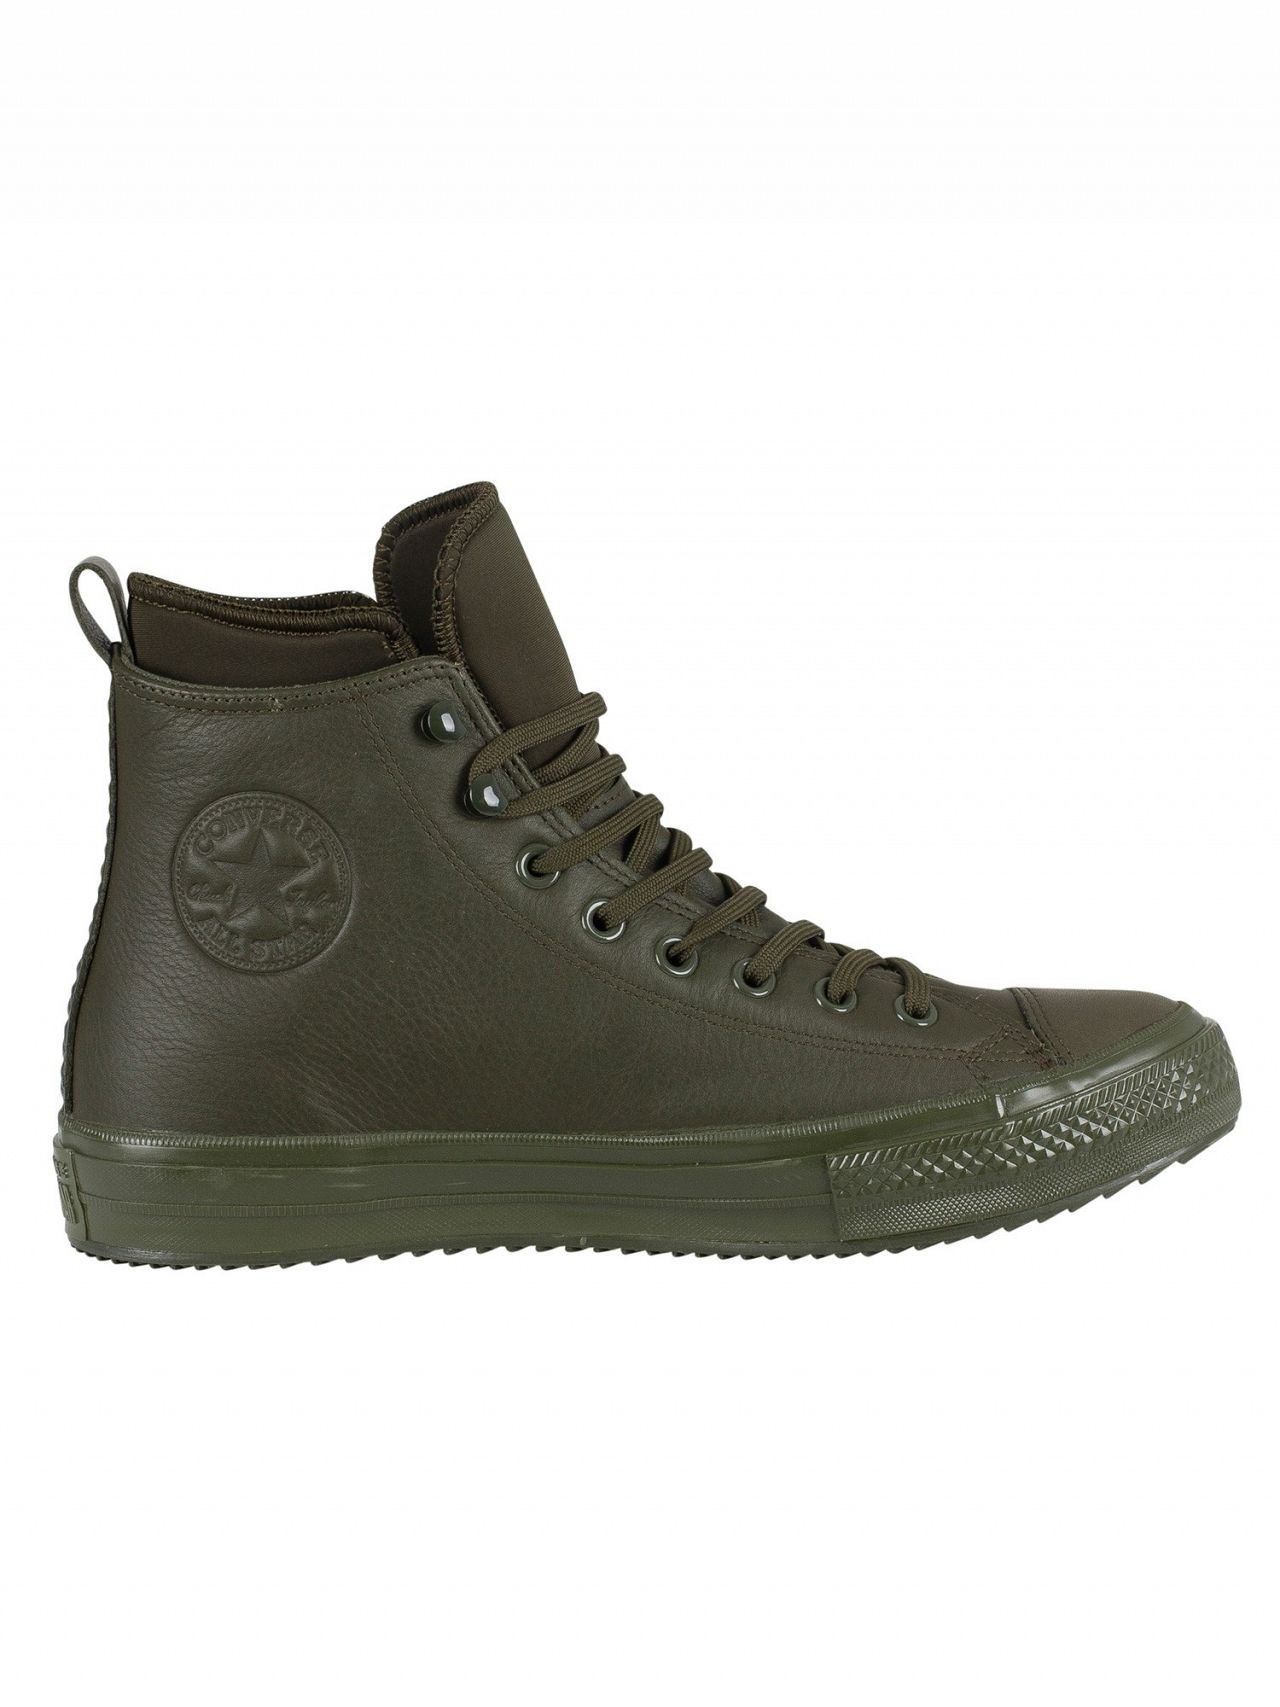 ac57e970d52d Converse Utility Green CT All Star Hi WP Leather Boots